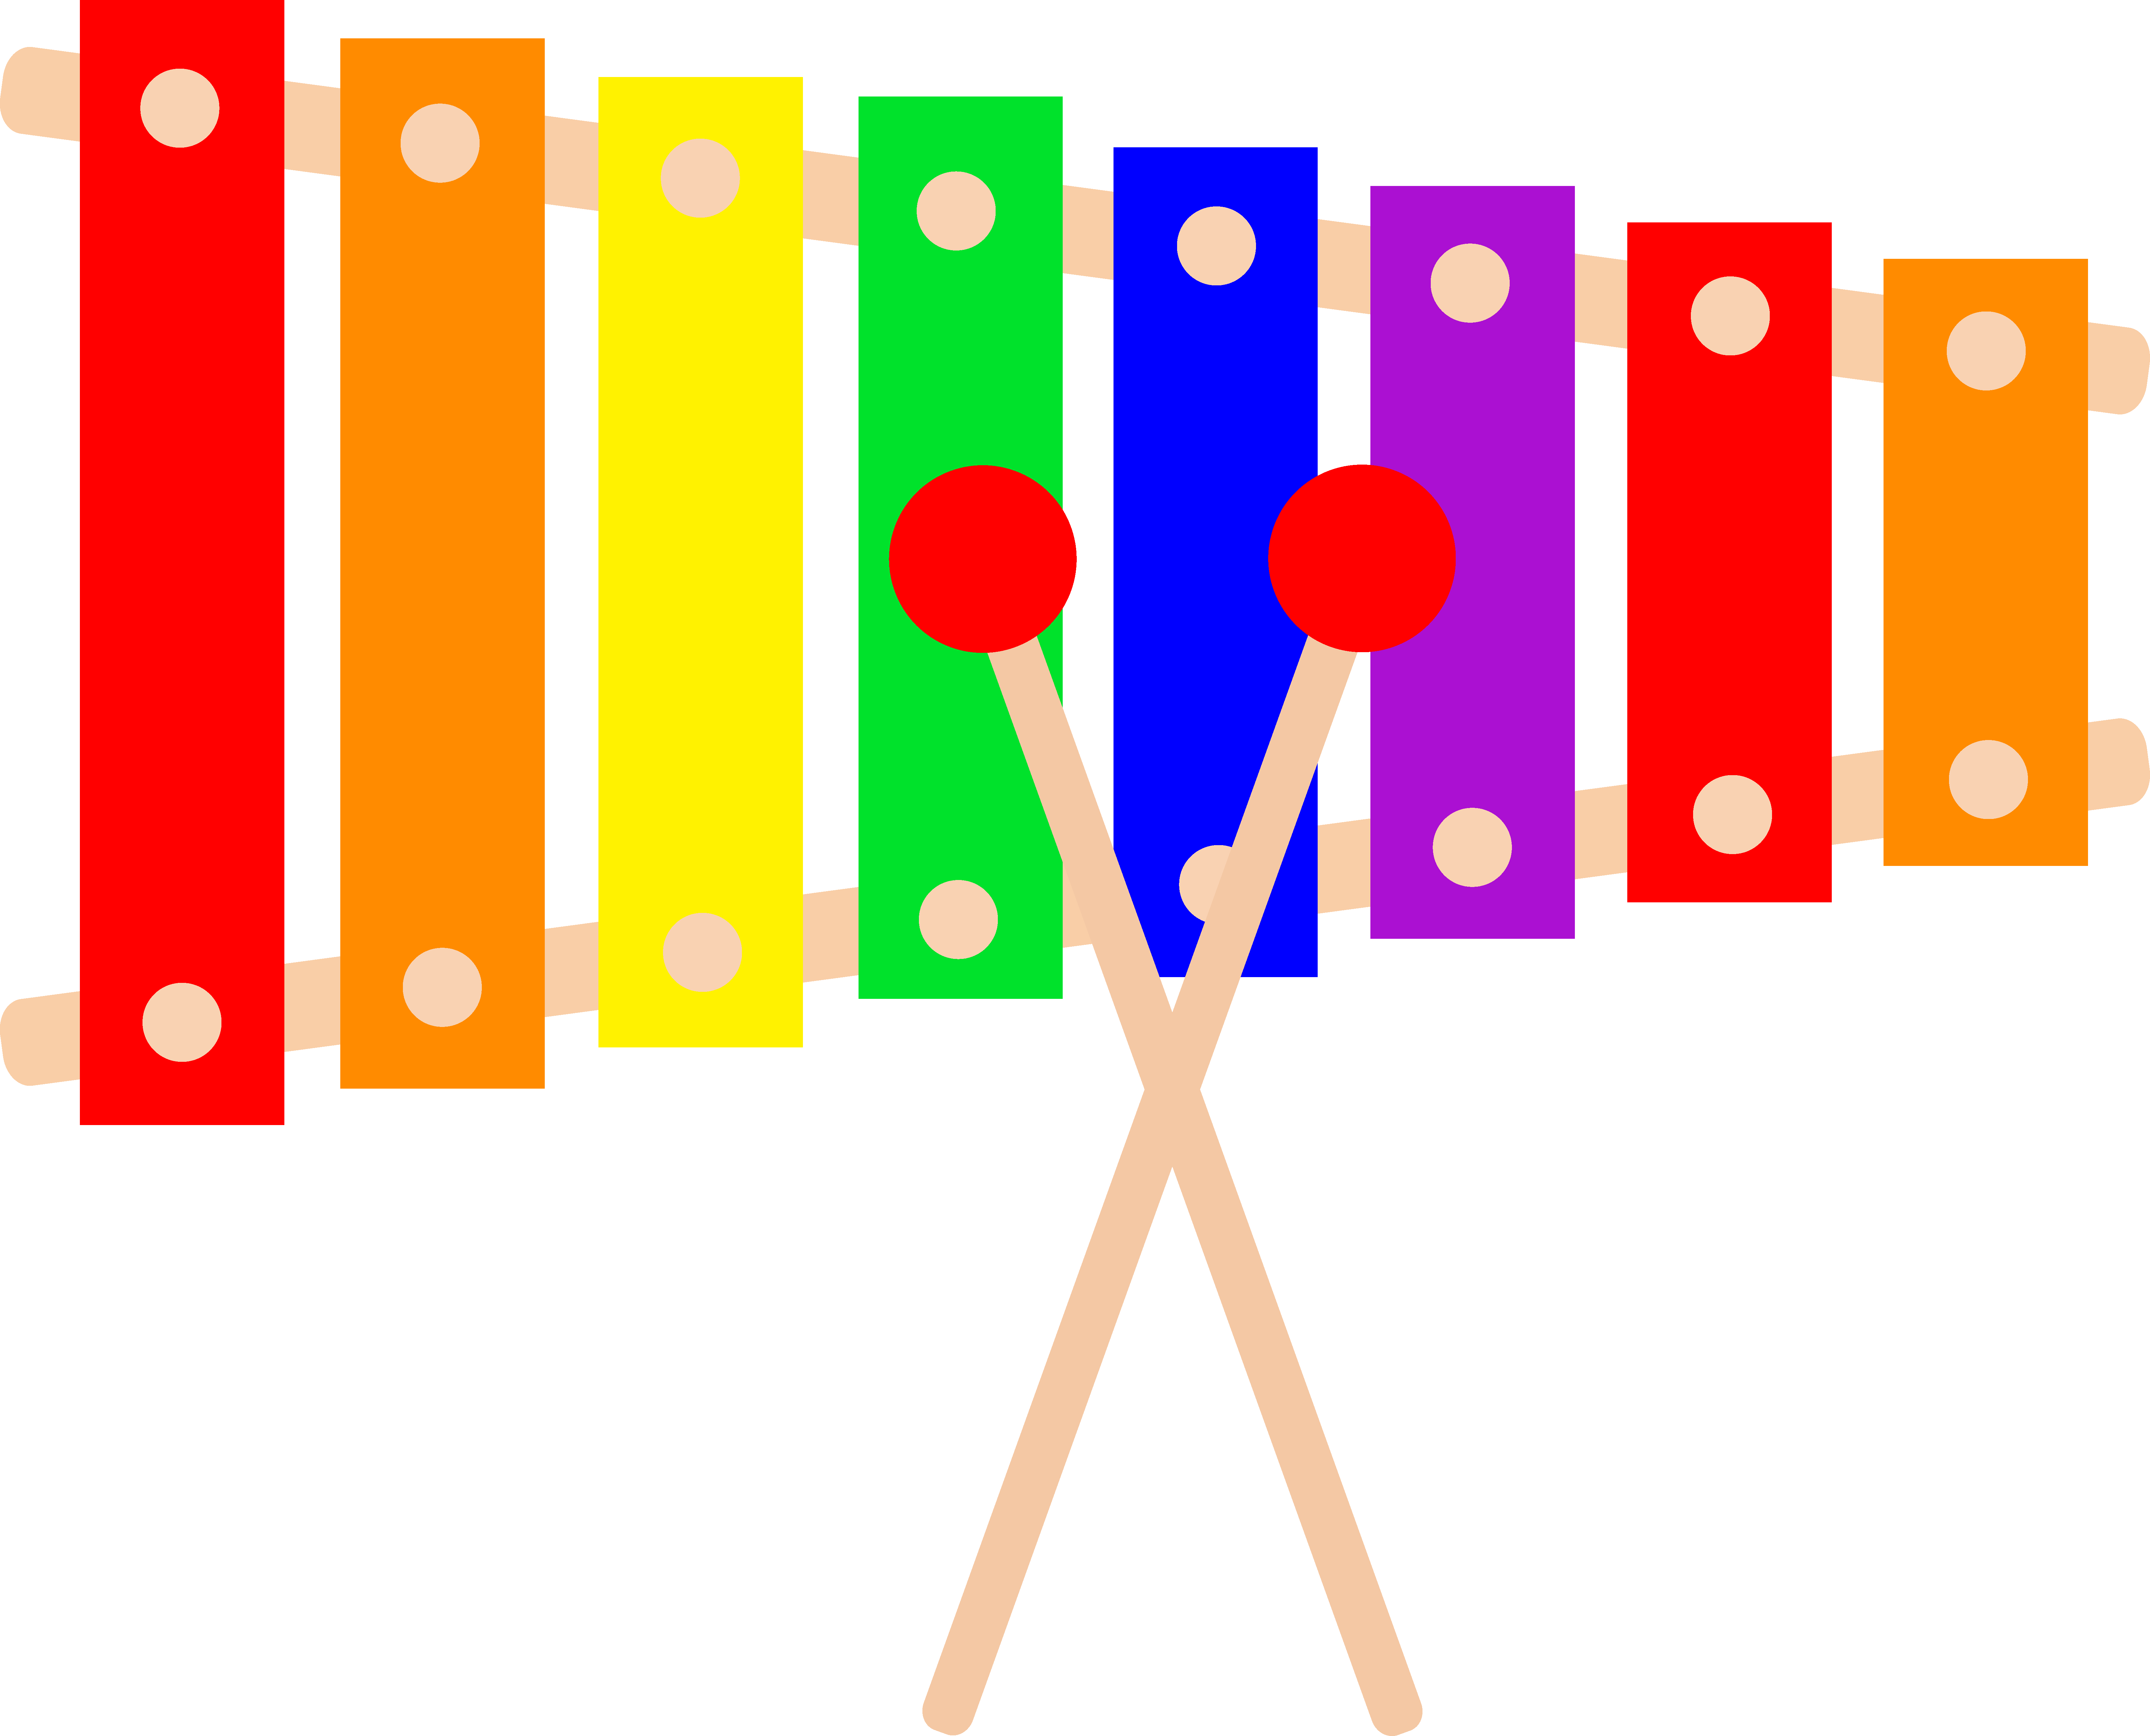 Colorful Xylophone Design Free Clip - Xylophone, Transparent background PNG HD thumbnail